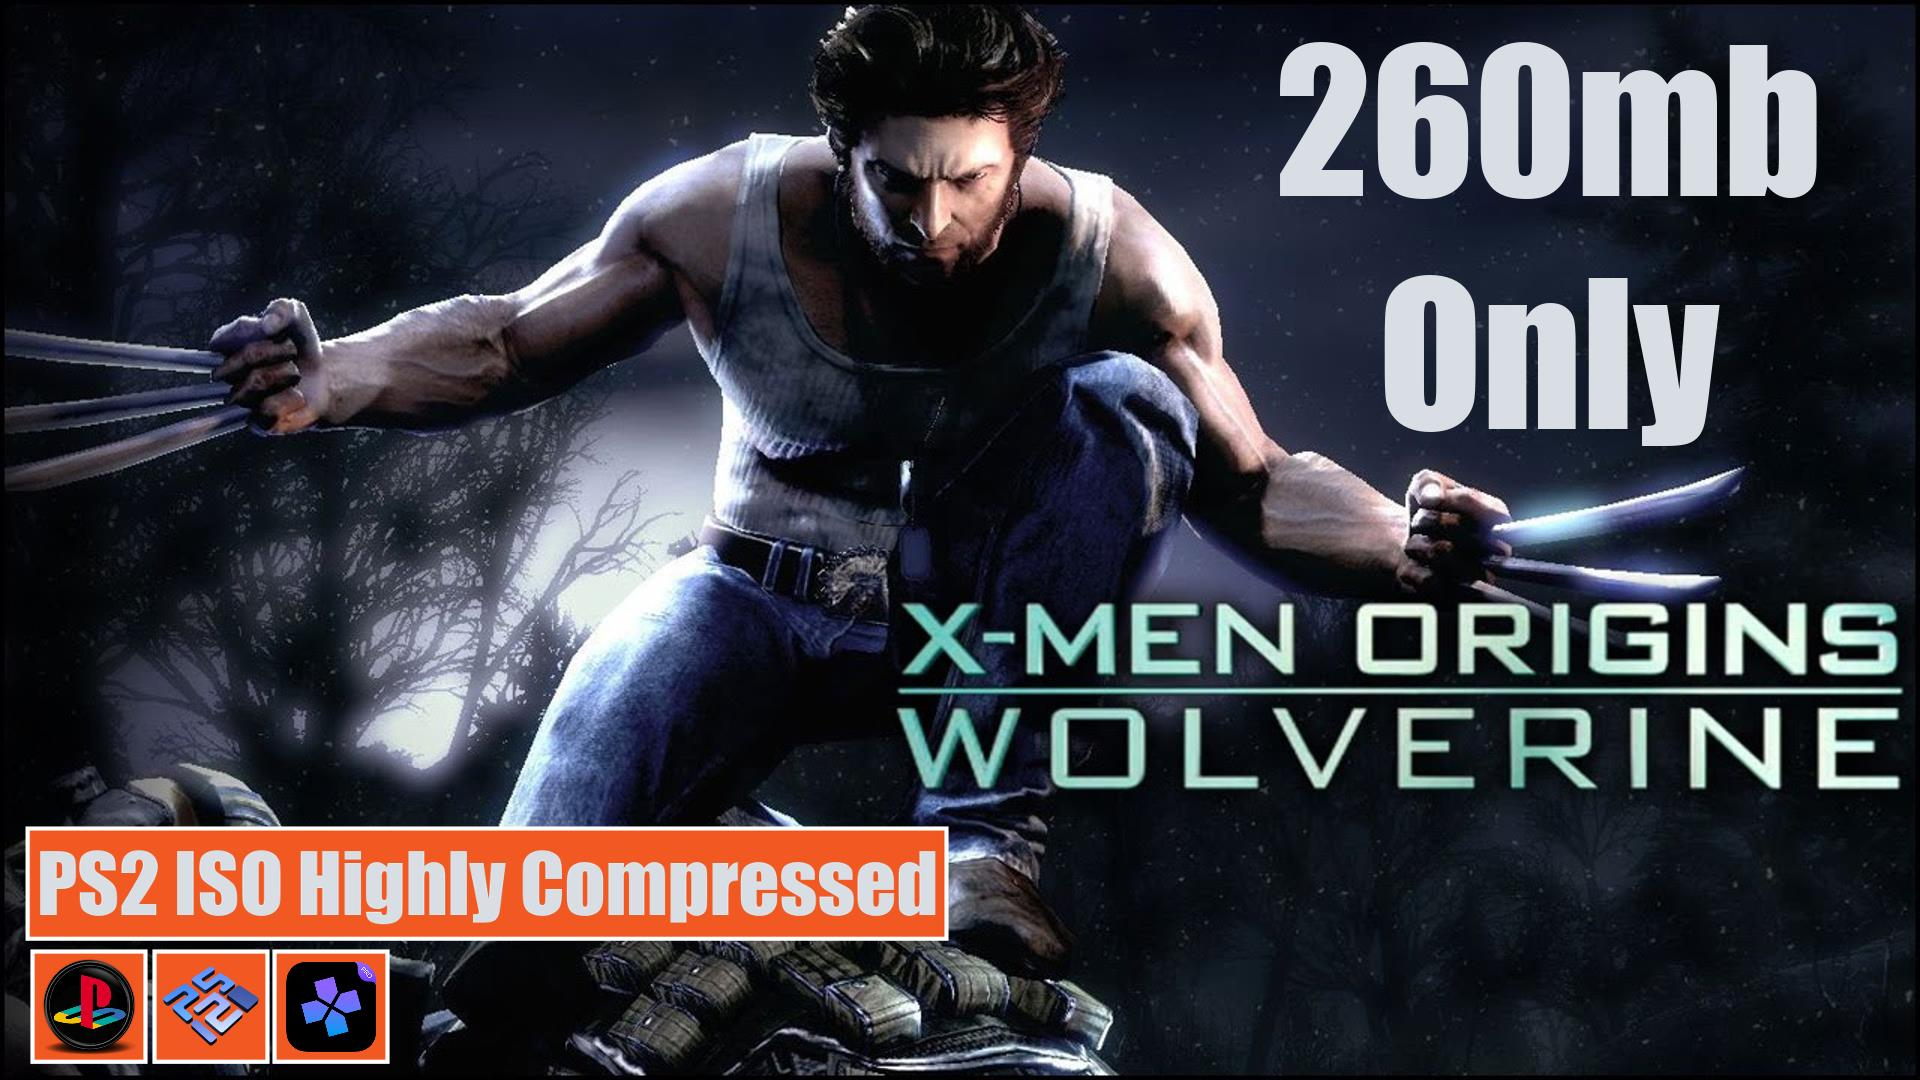 X-Men Origins Wolverine PS2 ISO Highly Compressed